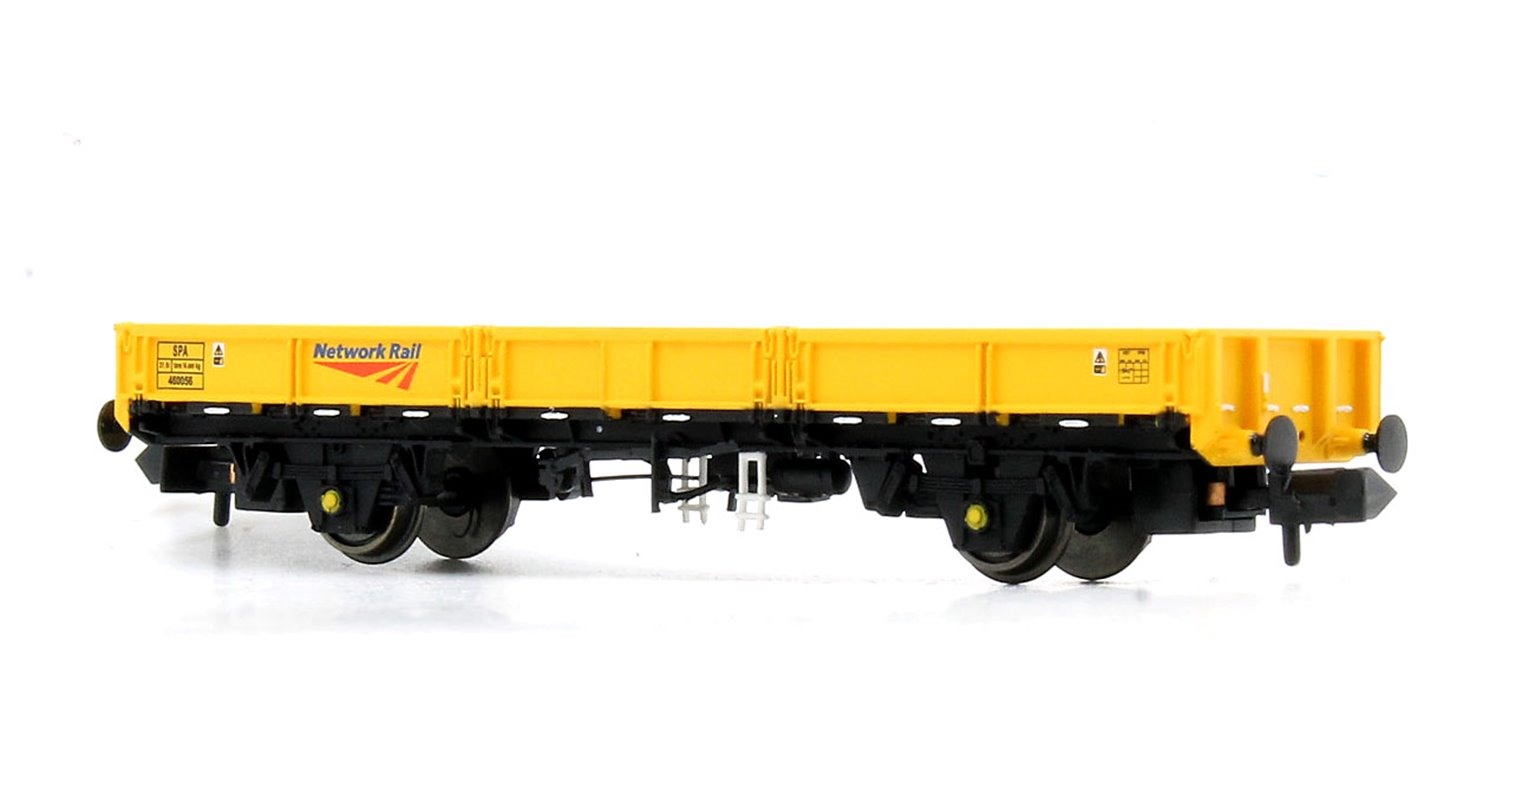 SPA Wagon Network Rail Yellow